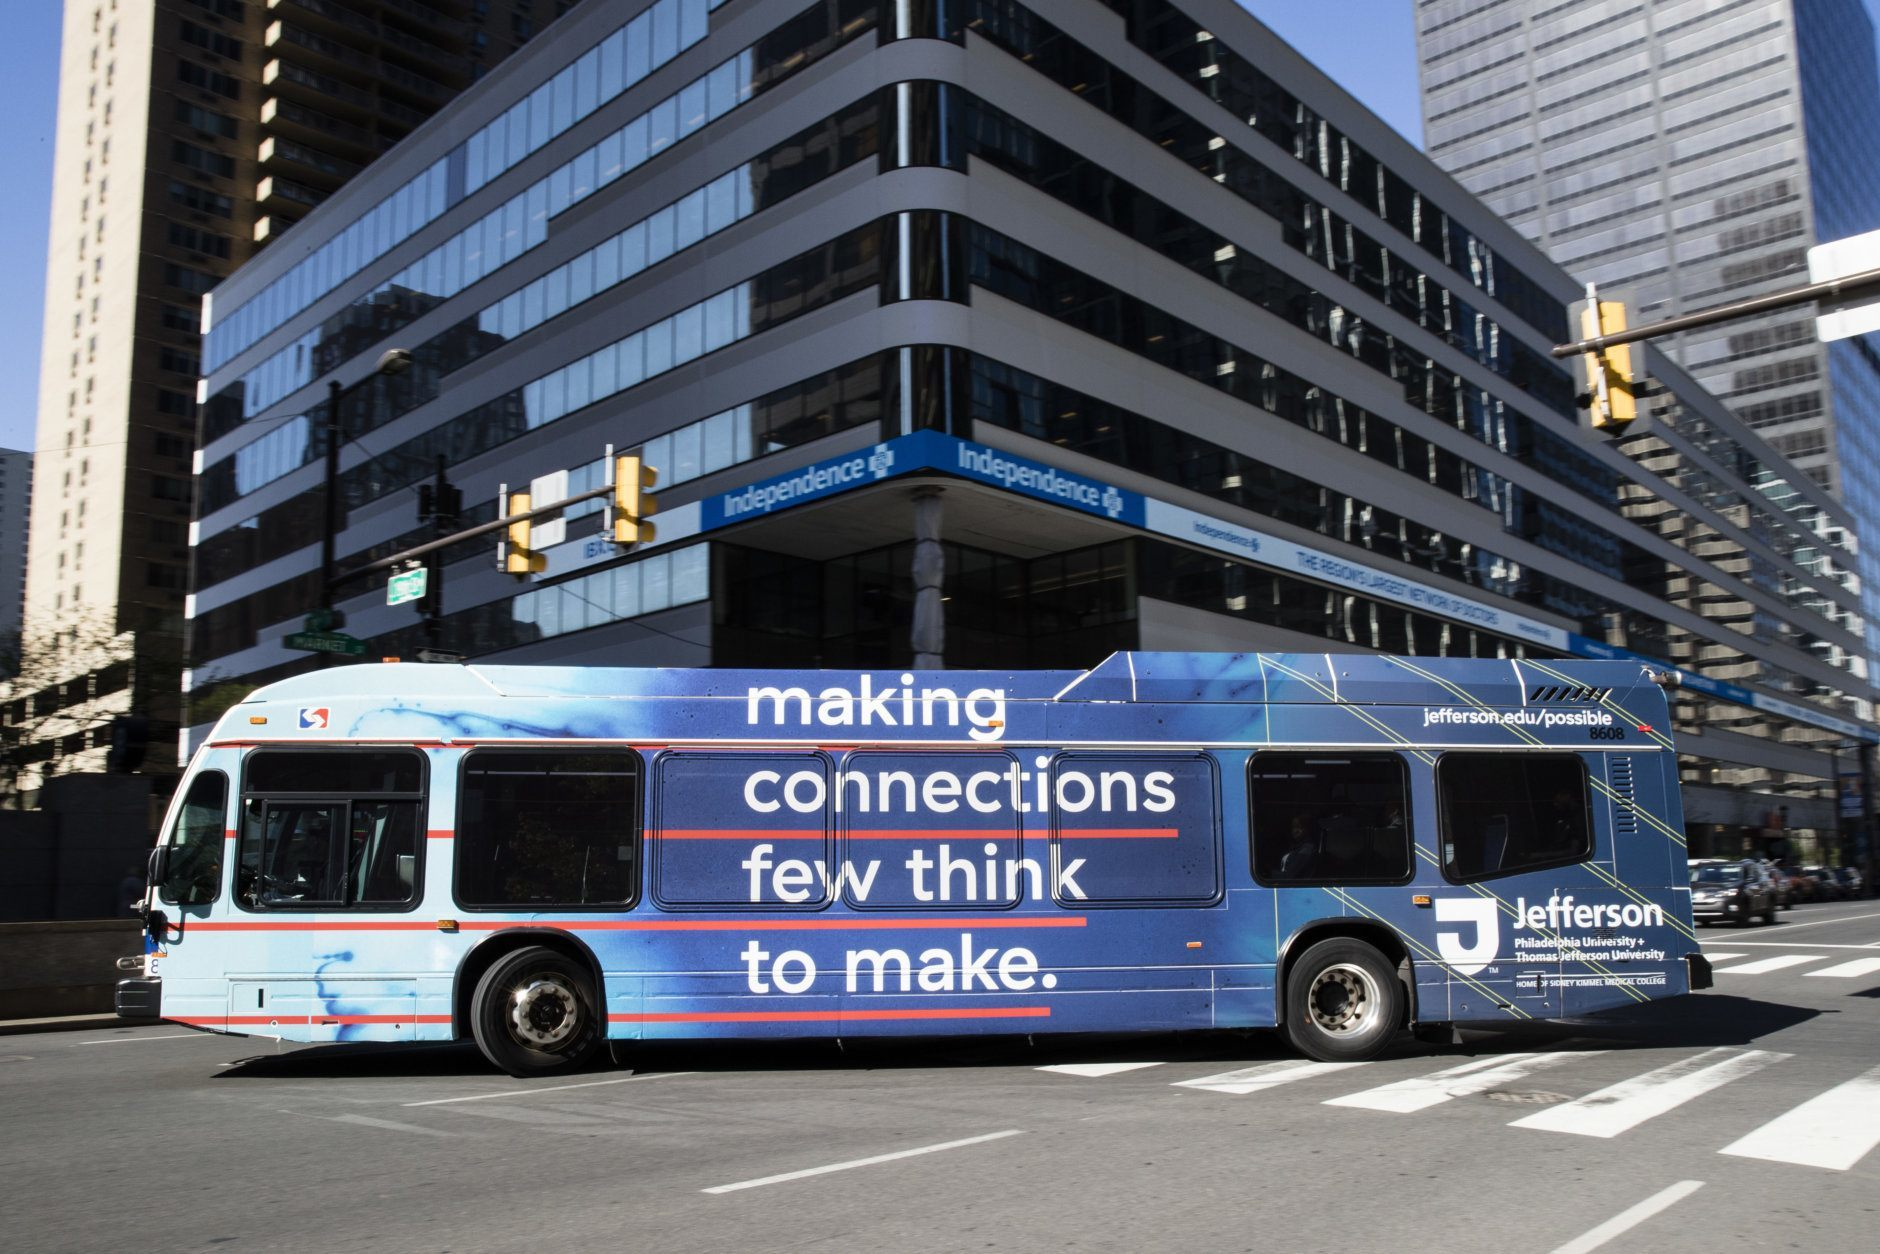 A Southeastern Pennsylvania Transportation Authority bus (SEPTA) turns onto Market Street in Philadelphia, Wednesday, May 2, 2018. Lawyers for an investigative reporting organization are suing Philadelphia's main transit agency after it refused to run ads about the group's stories on racial disparities in mortgage lending. (AP Photo/Matt Rourke)